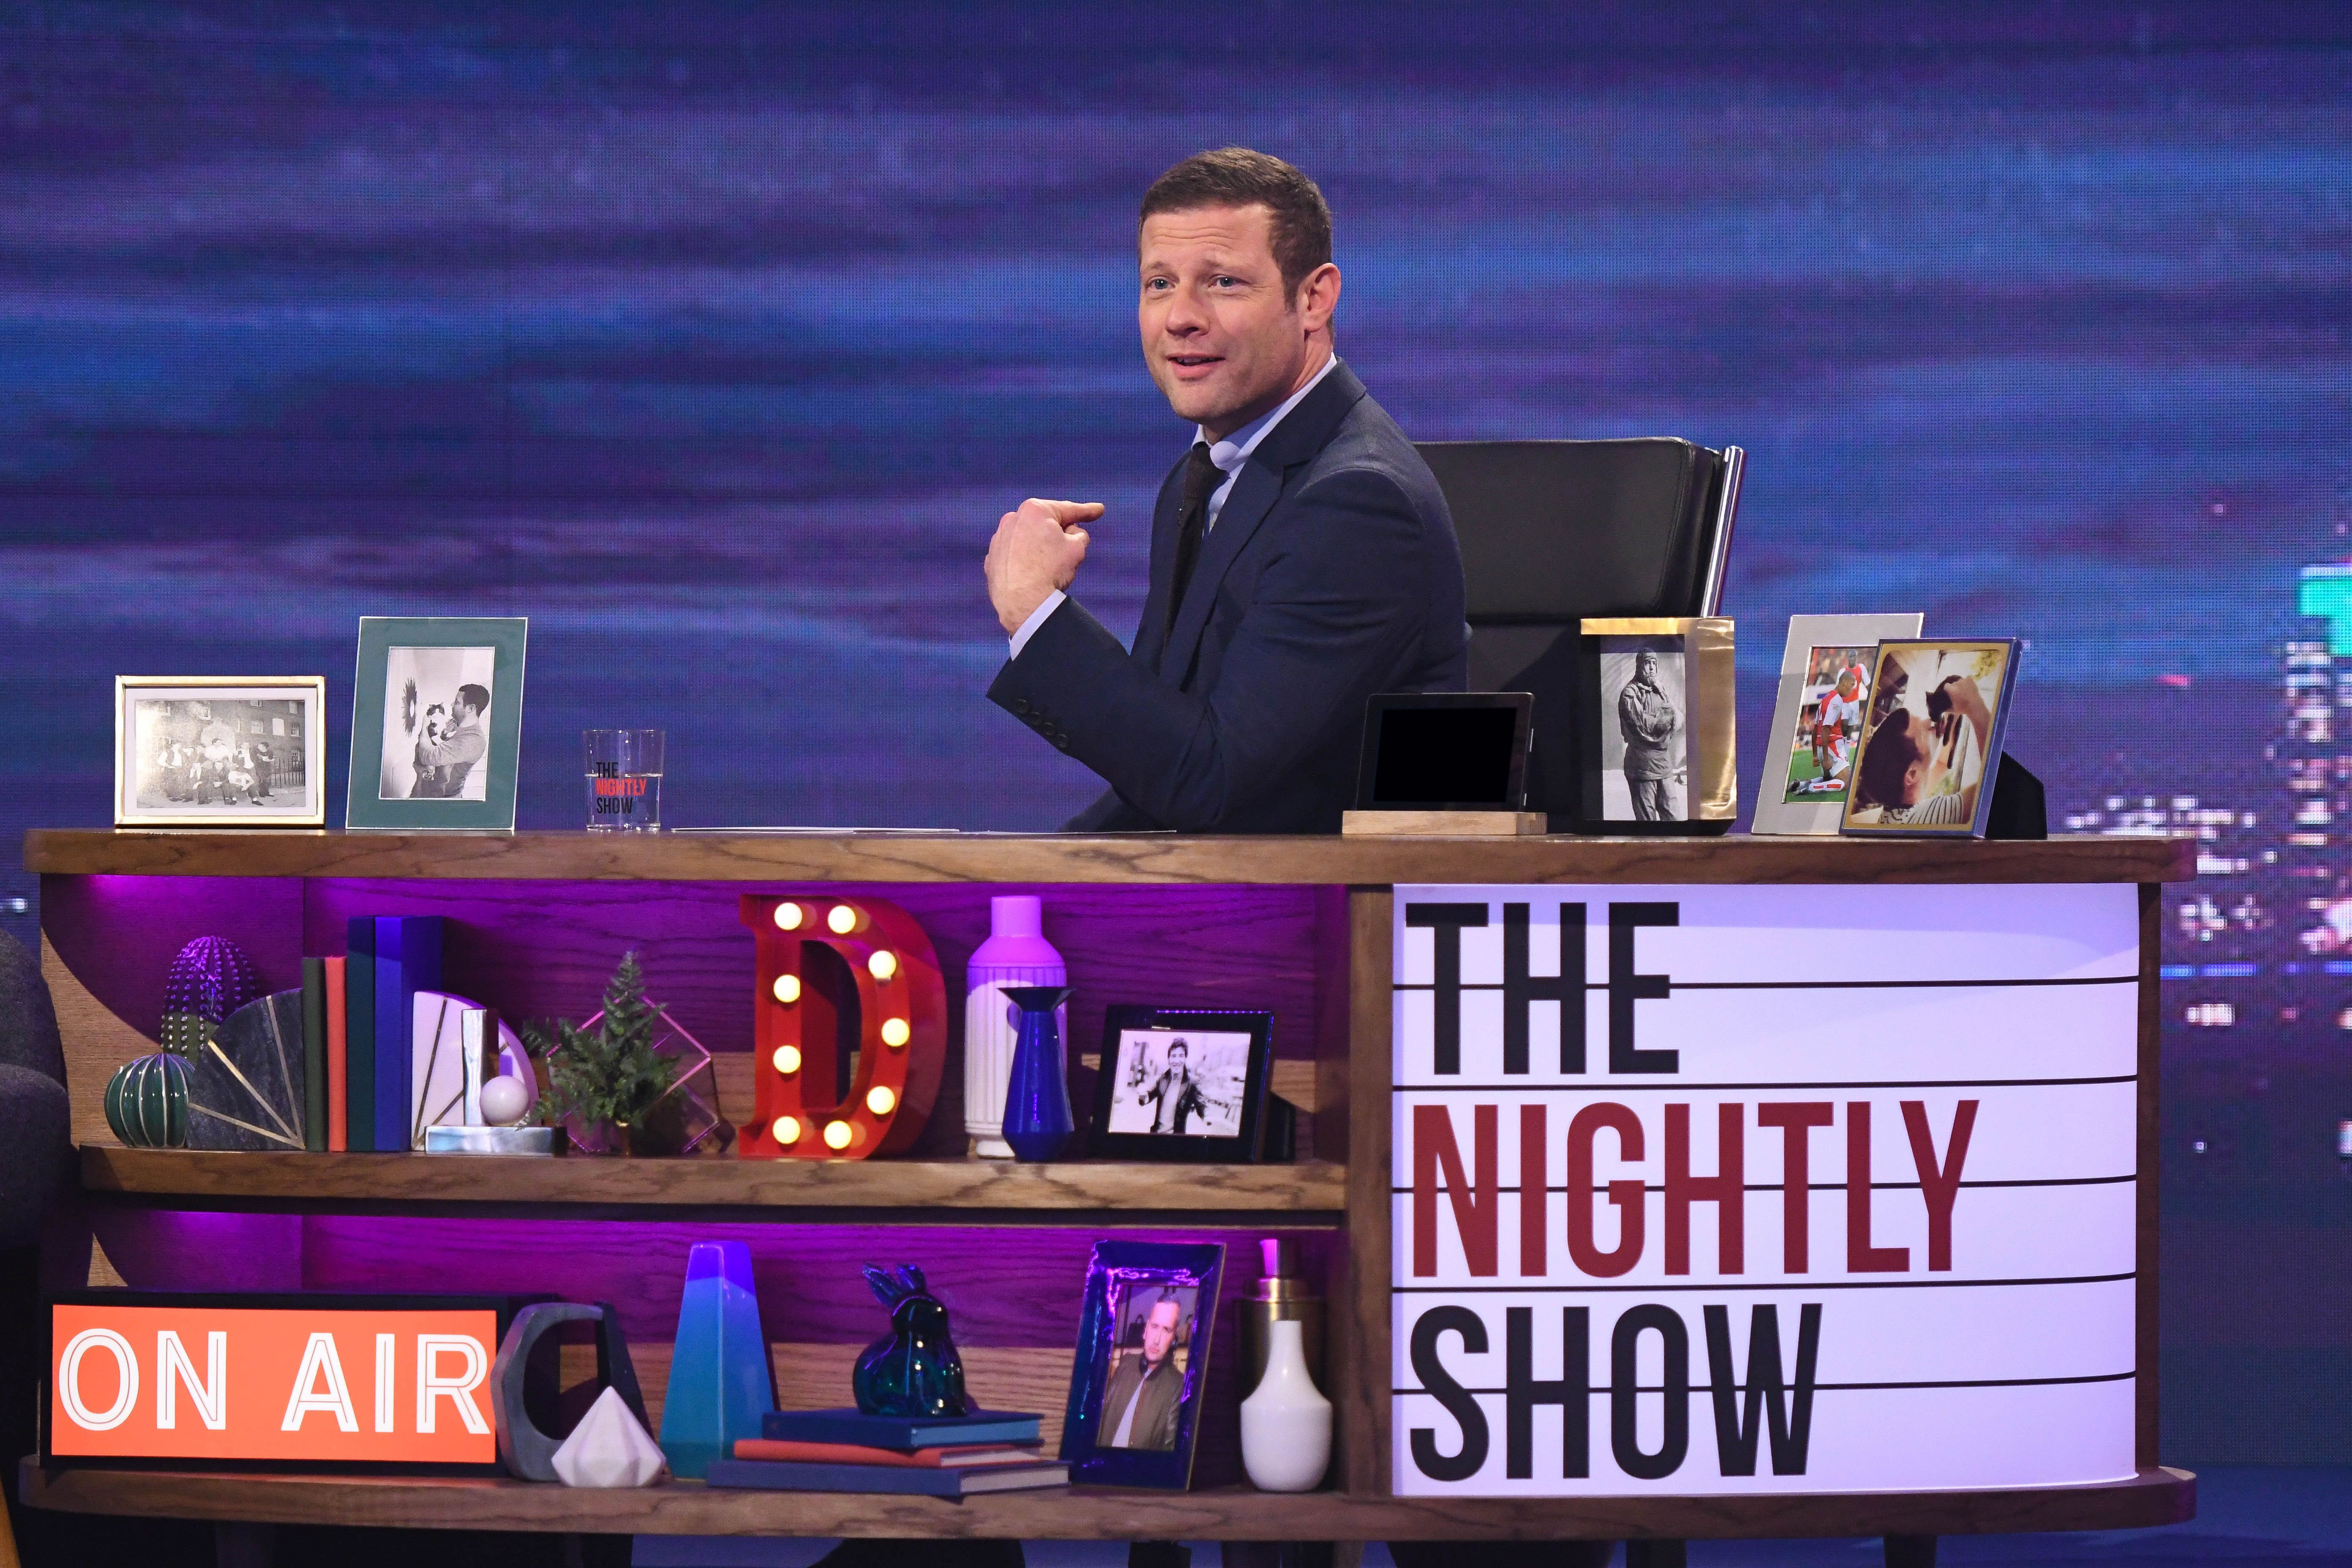 Dermot O'Leary Receives (Mostly) Positive Reviews As He Returns To 'The Nightly